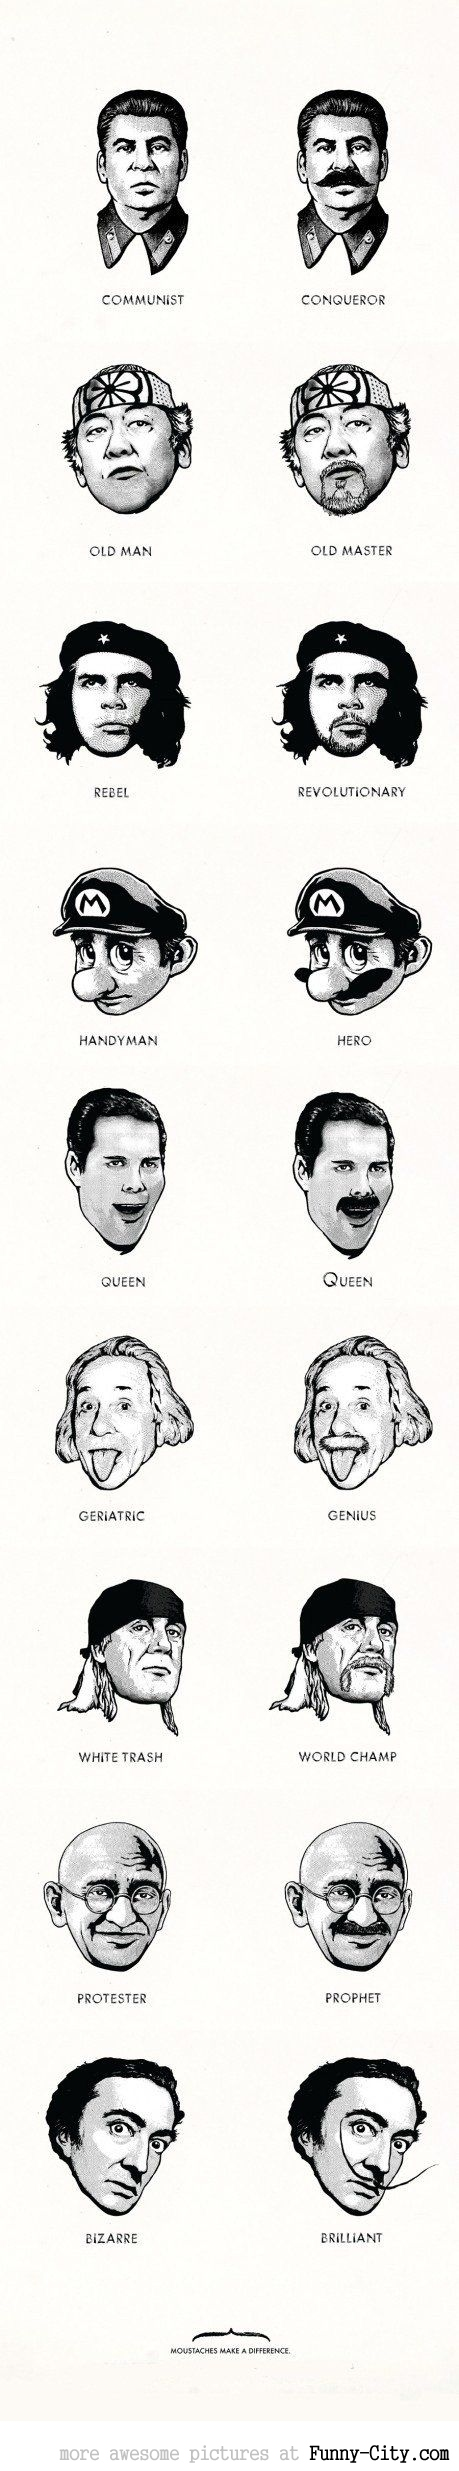 Moustaches make a difference [2265]